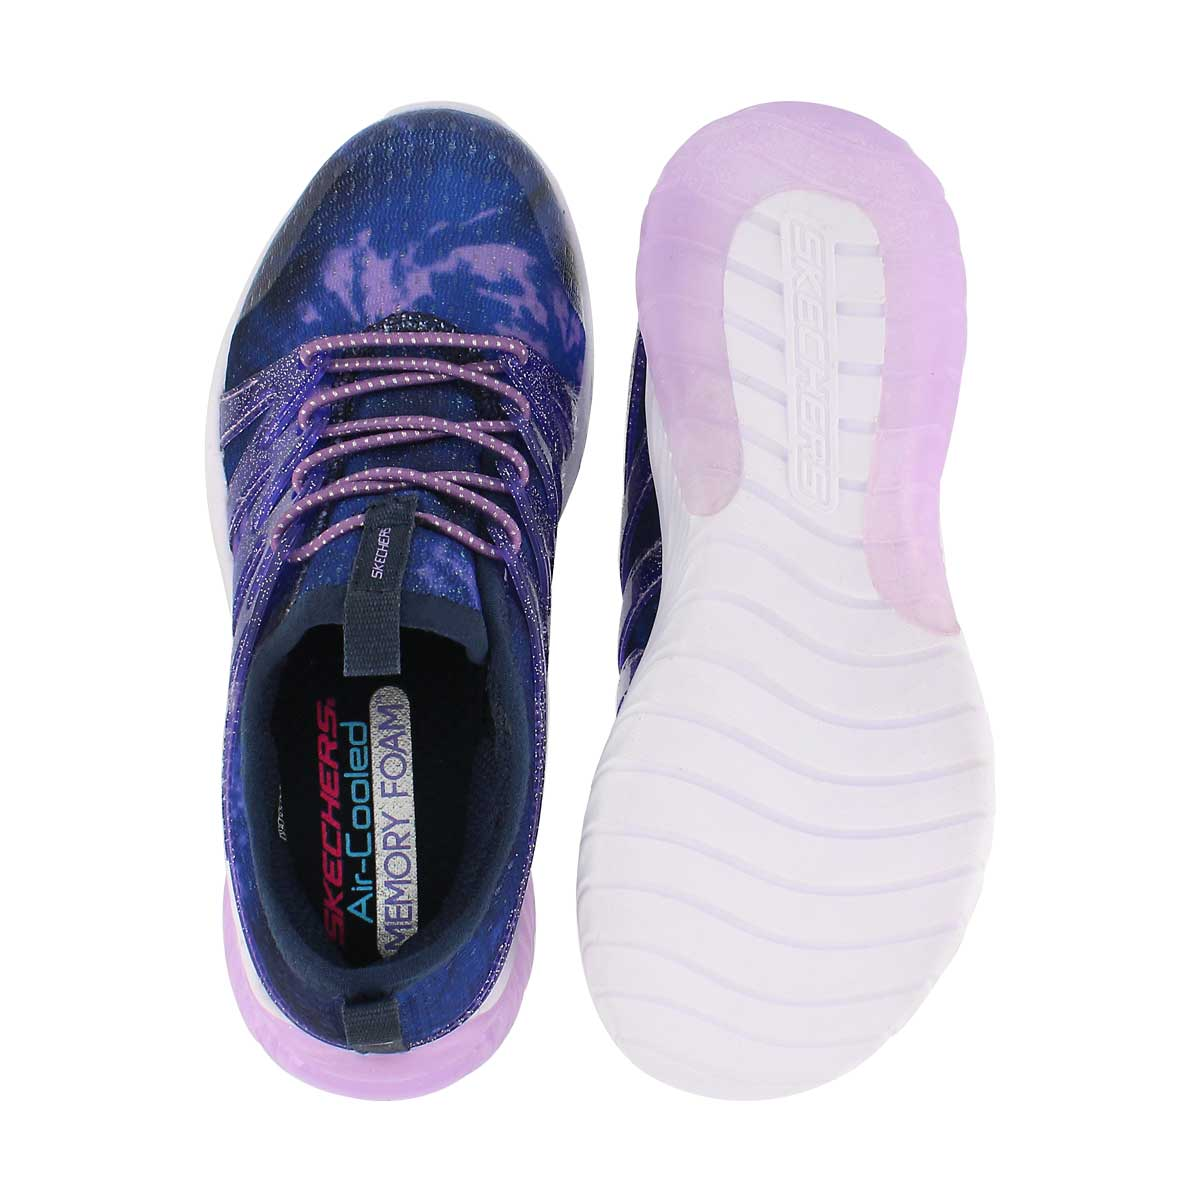 Grls Skech Gem nvy/ppl slip on sneaker